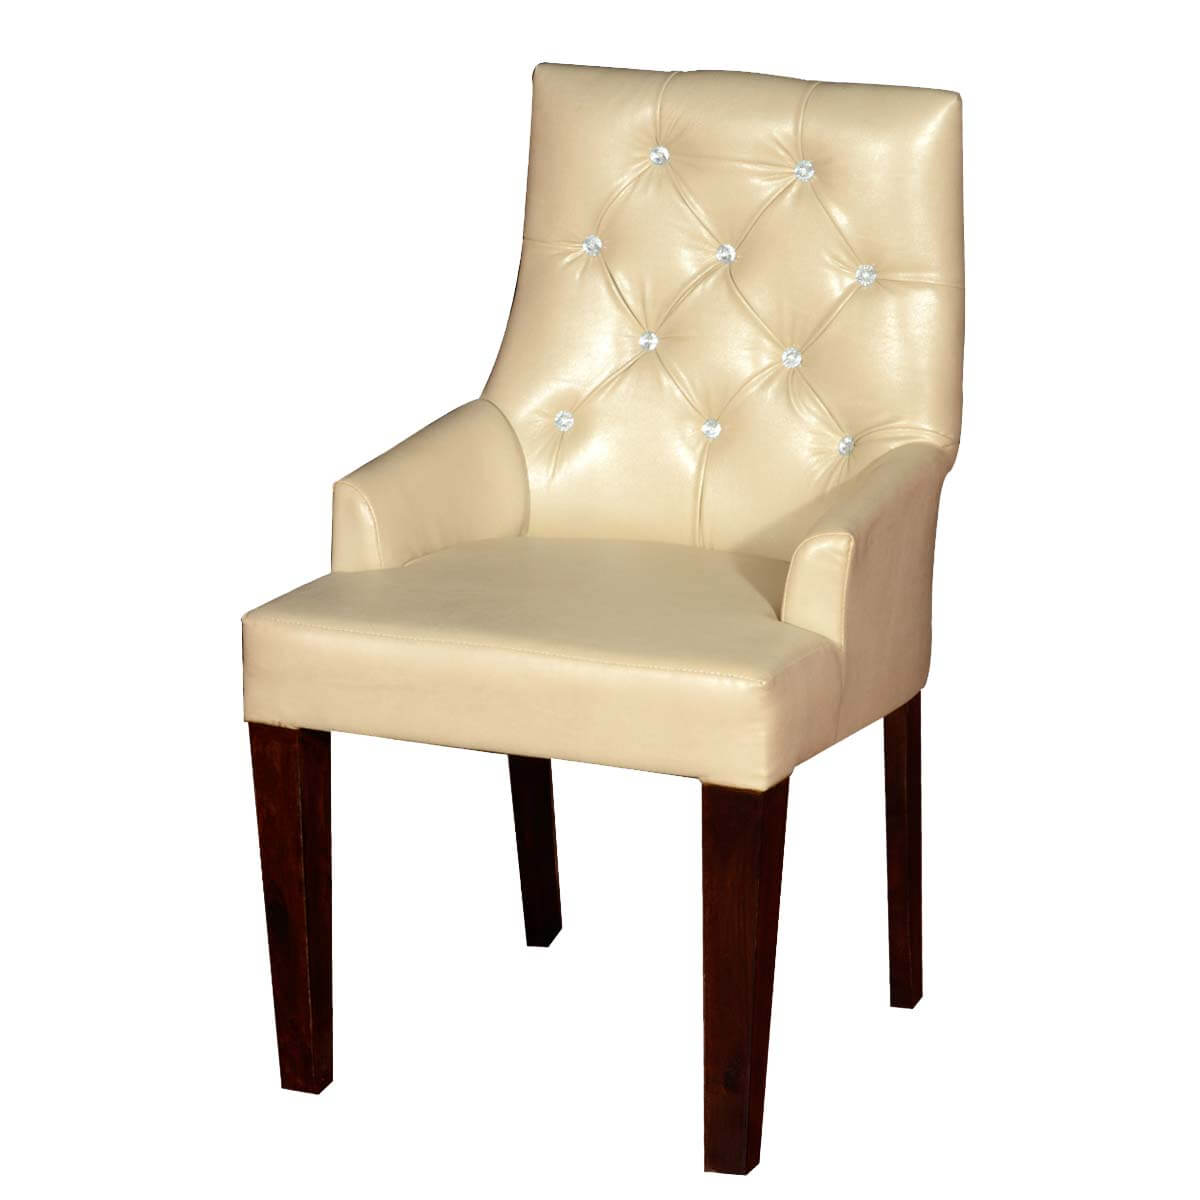 Contemporary white leather upholstered solid wood chair for White wood upholstered dining chairs